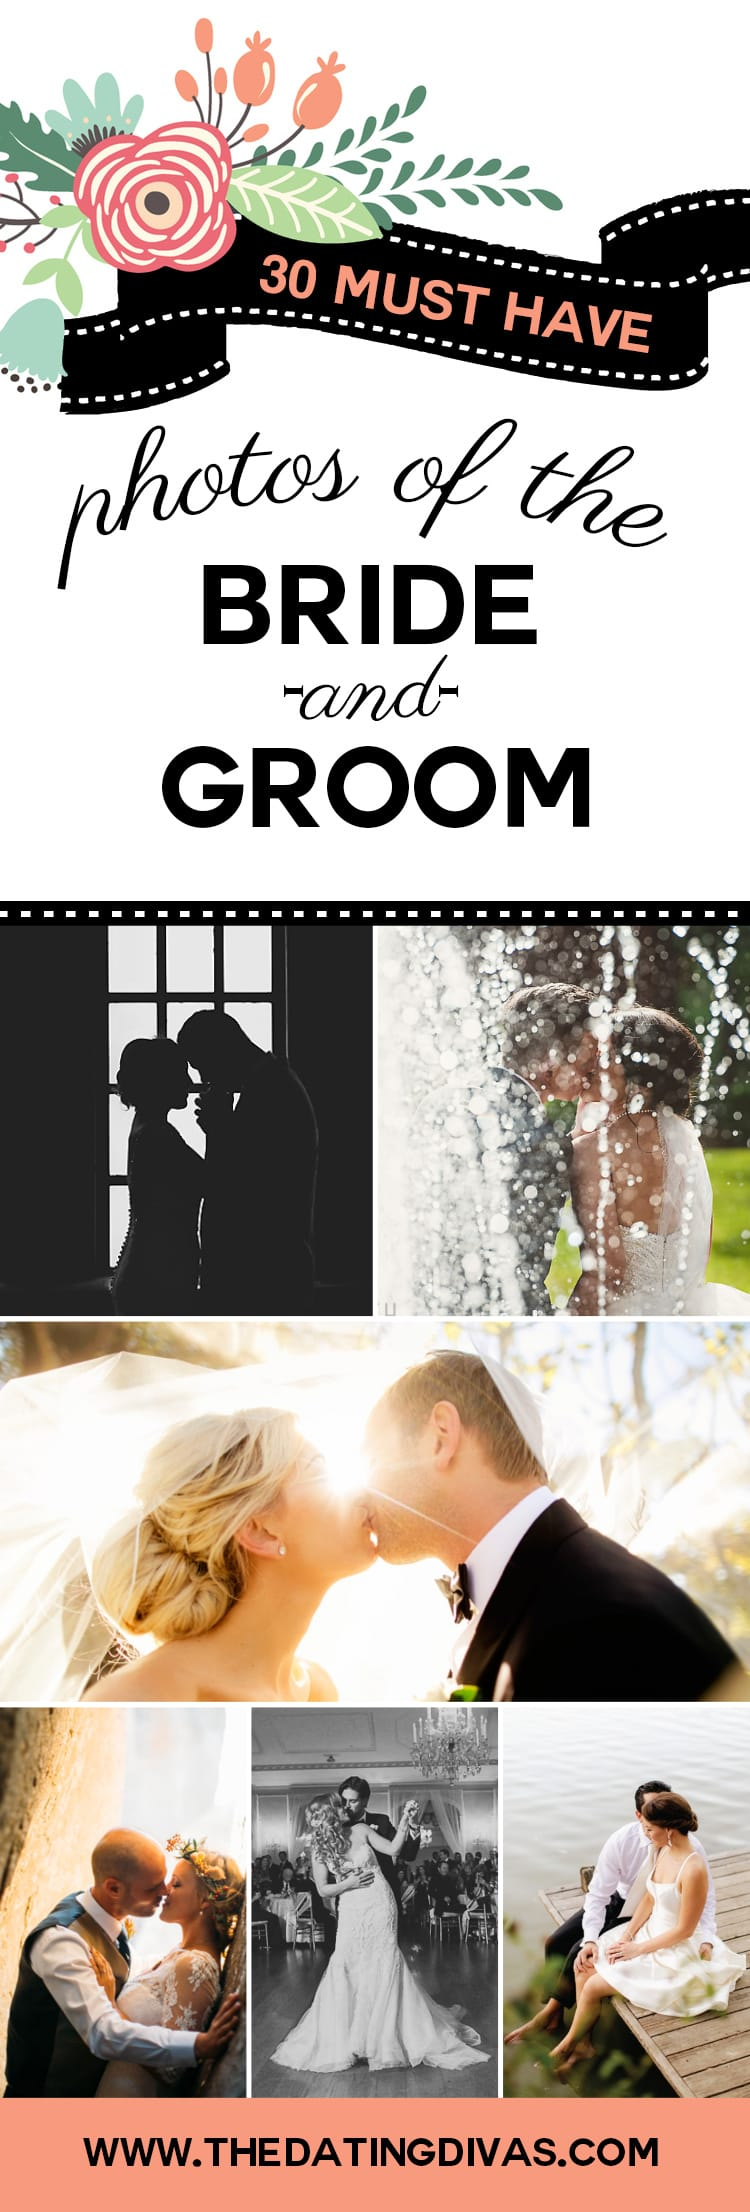 Must have Photos of the Bride and Groom